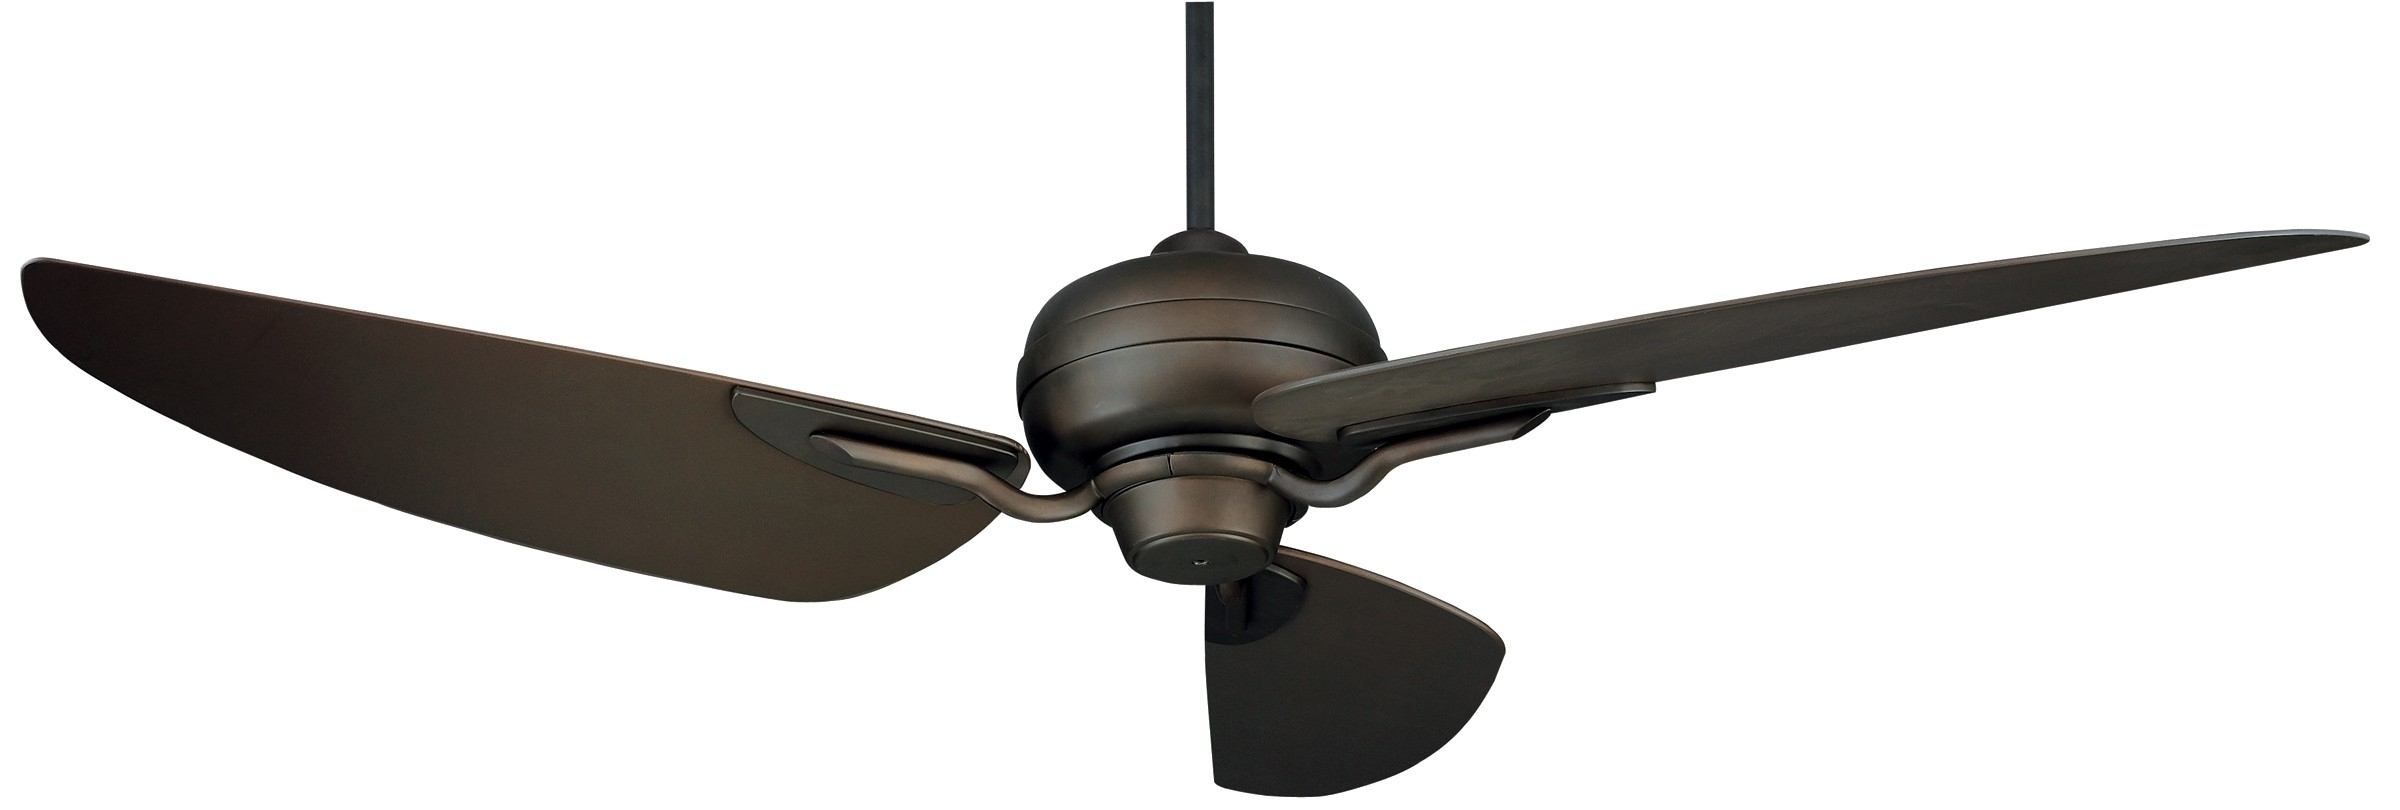 Fashionable Outdoor Fans Wet Rated – Photos House Interior And Fan Throughout Wet Rated Emerson Outdoor Ceiling Fans (Gallery 4 of 20)